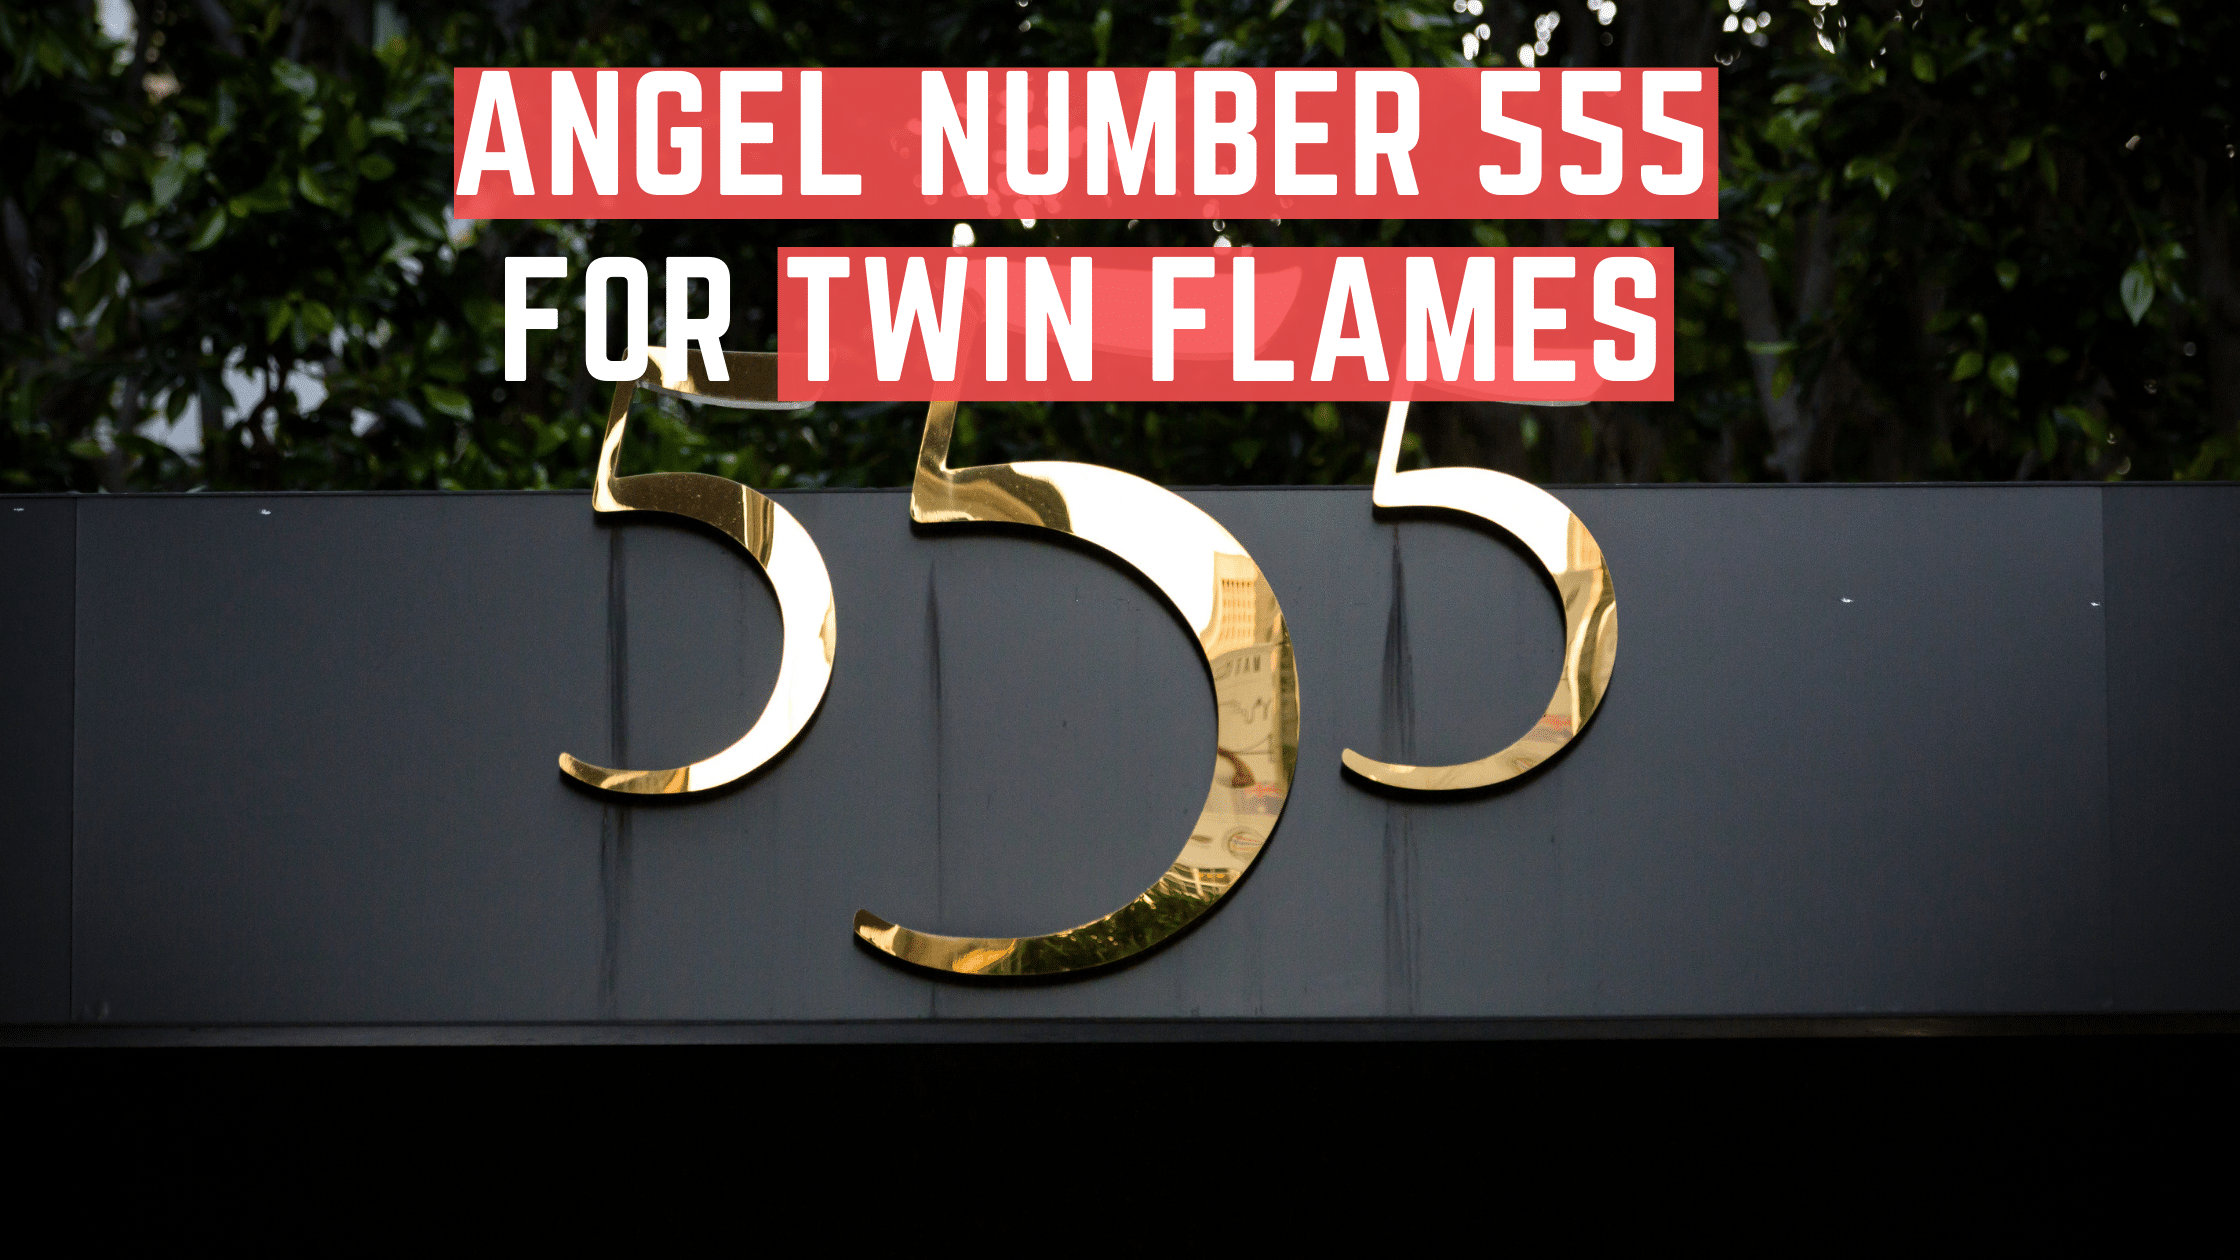 What Does Seeing 555 Mean for Twin Flames?